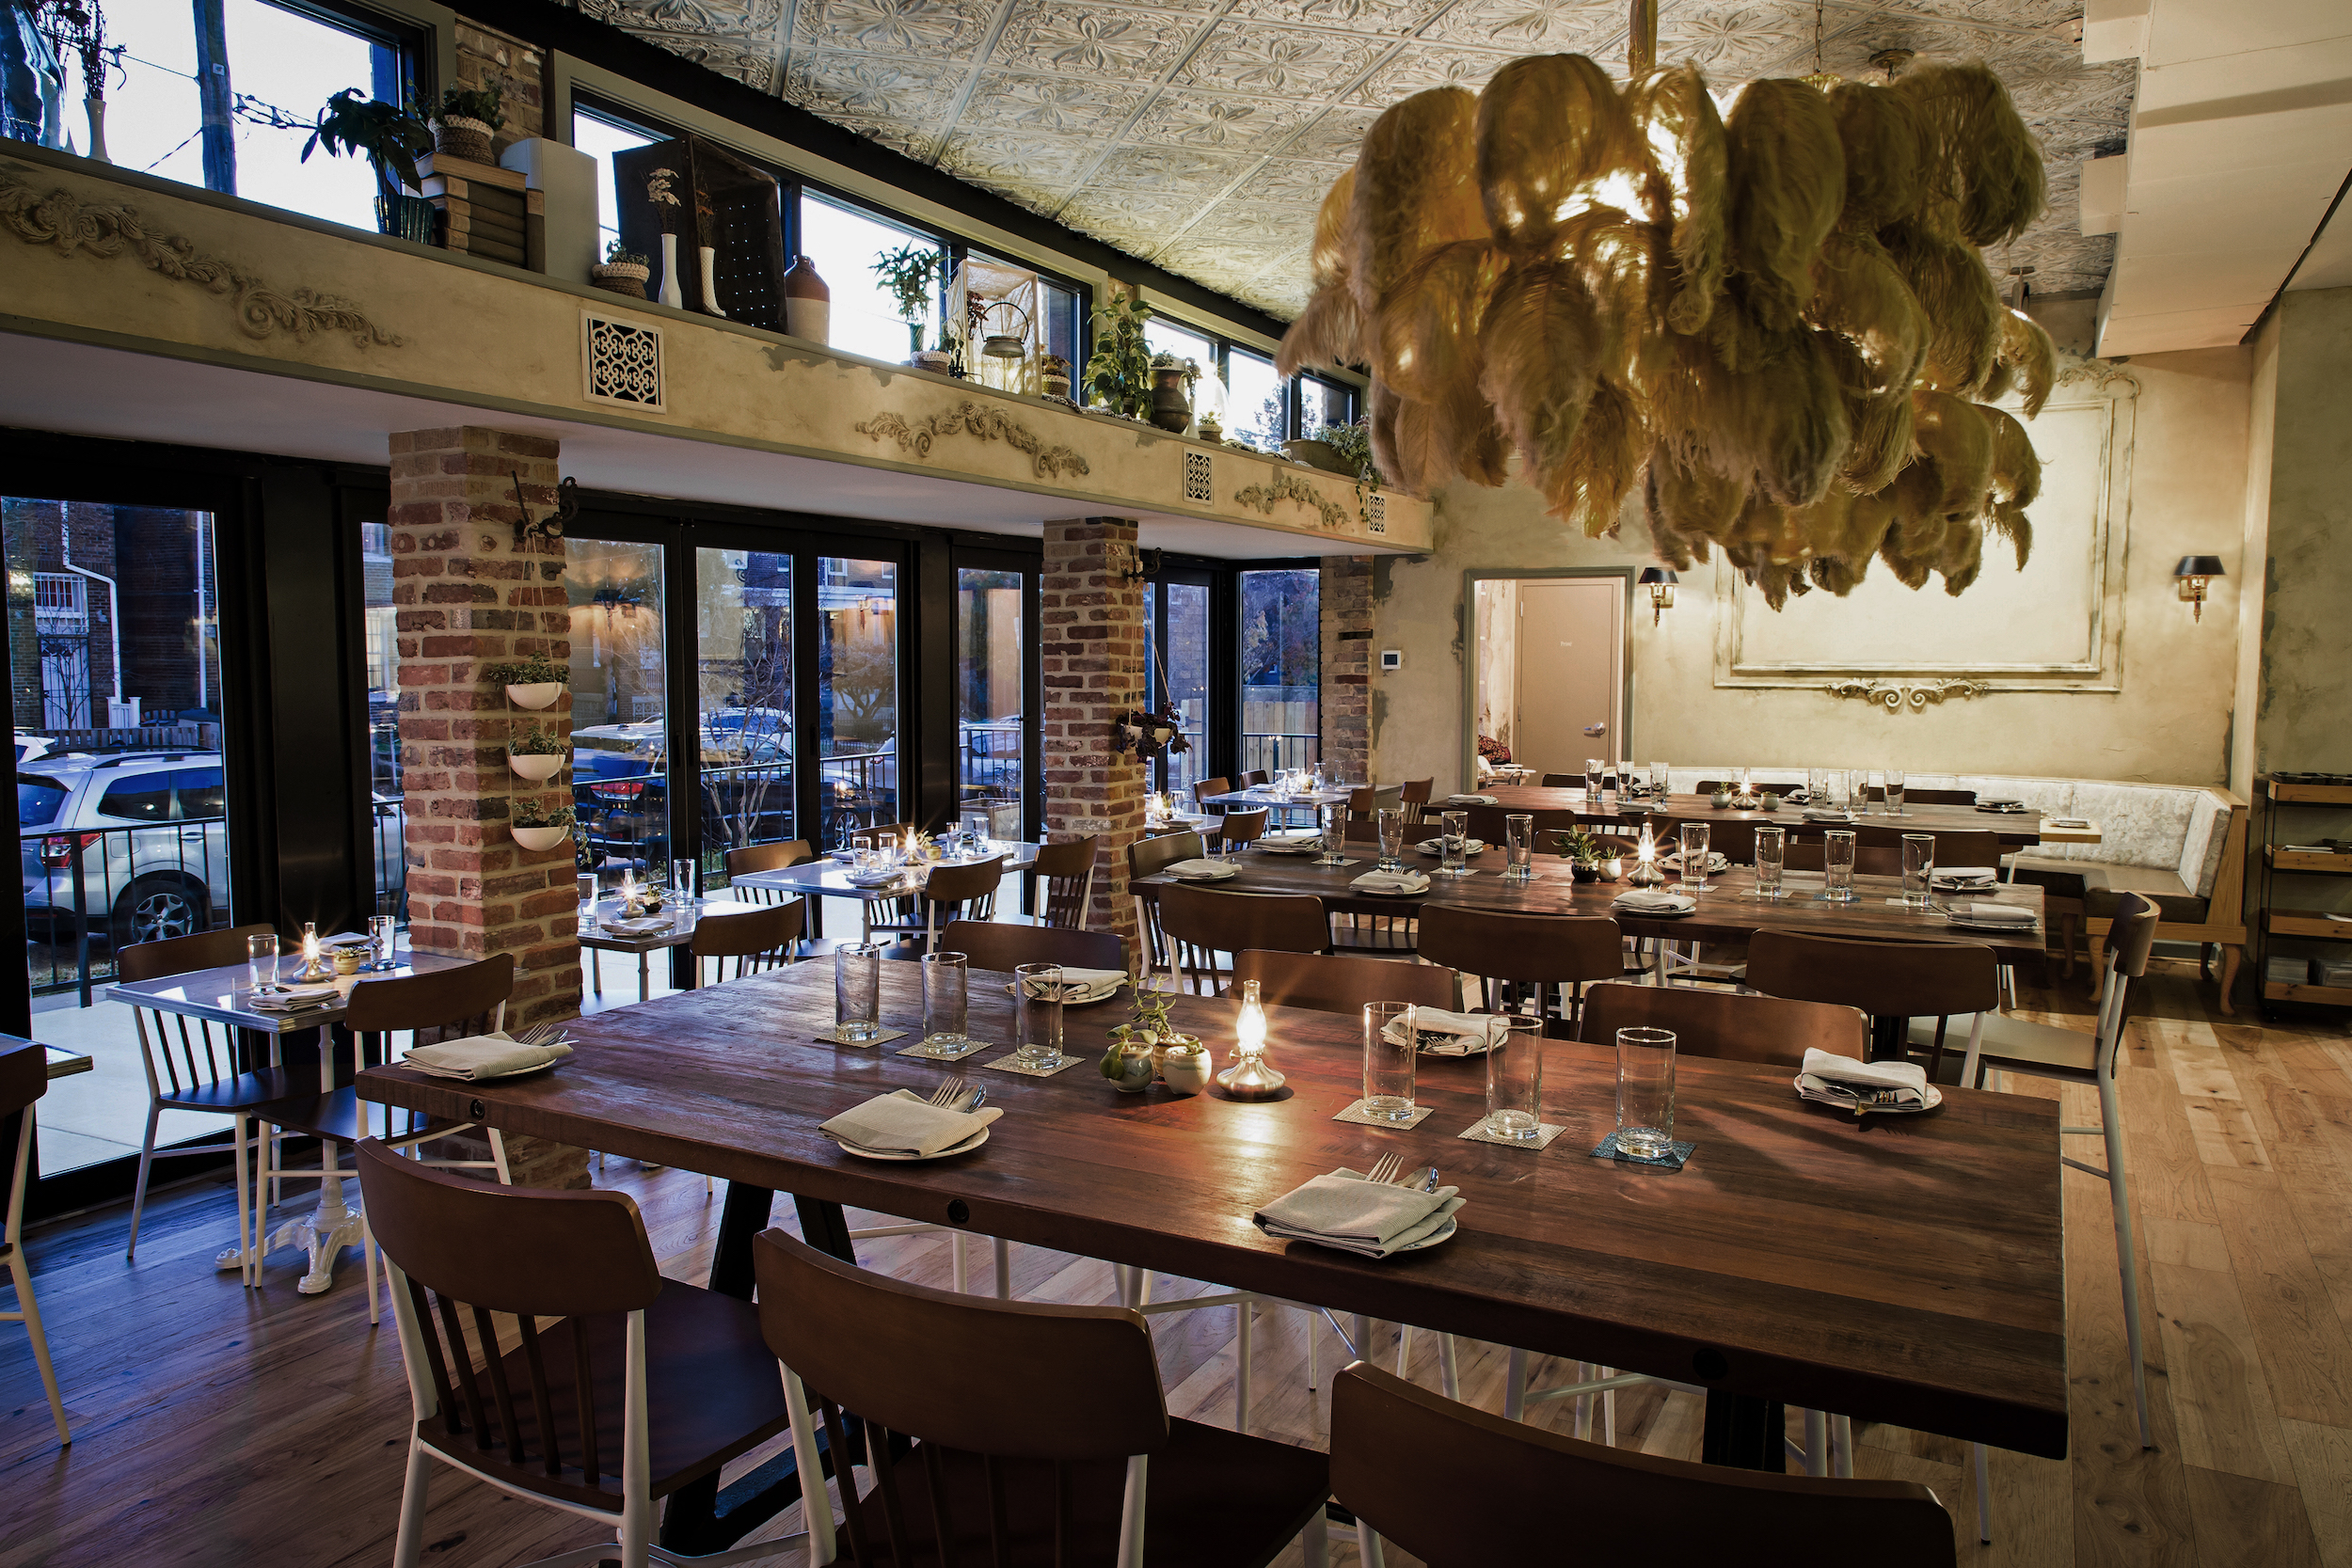 The Coziest Restaurants In DC Zagat - Table restaurant dc